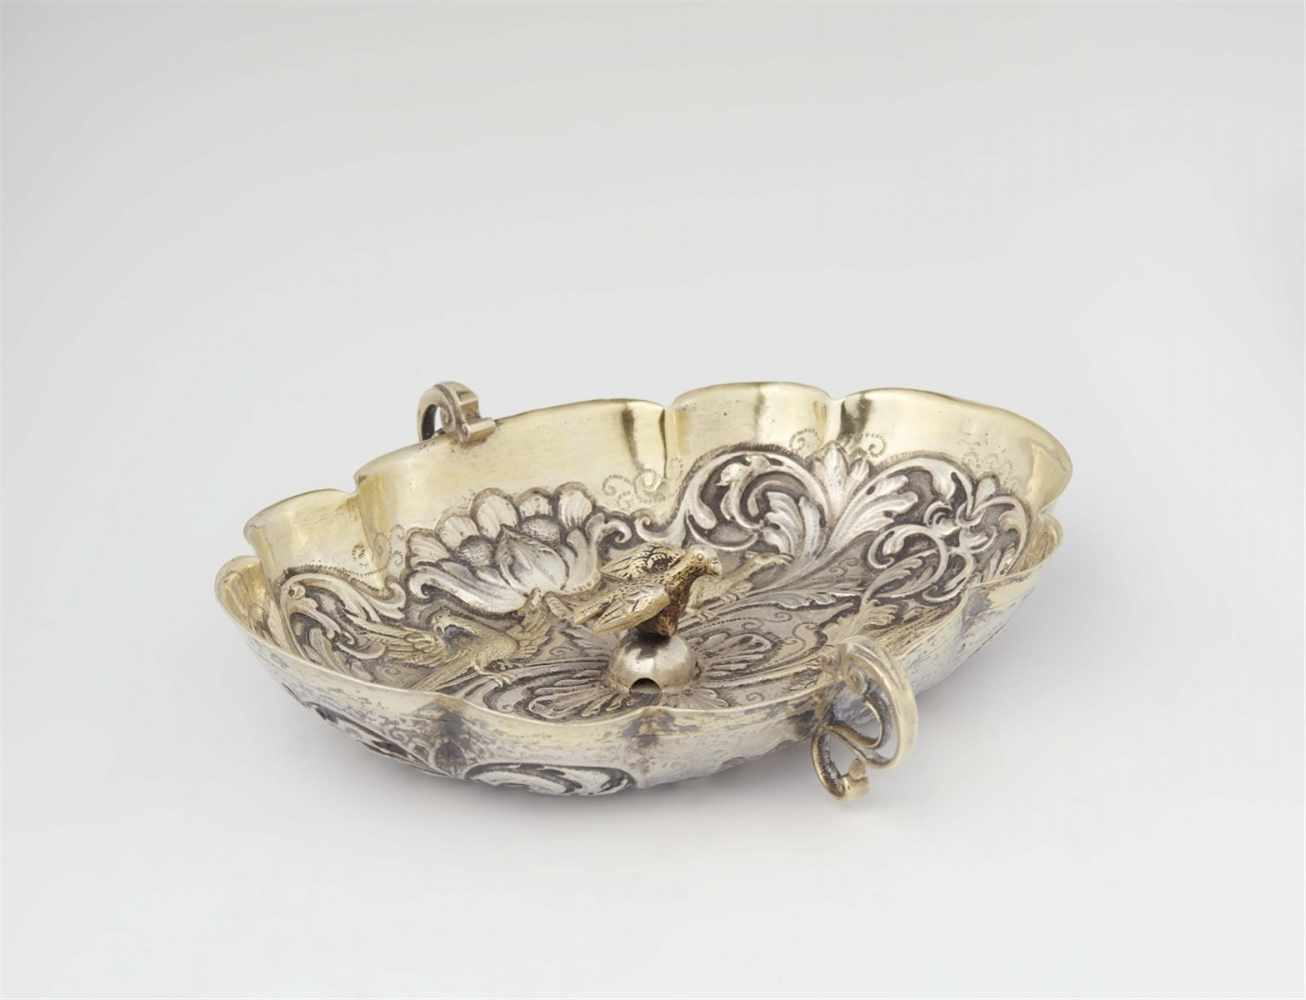 Lot 314 - An Augsburg silver gilt brandy bowl with a phoenixOval scalloped dish decorated with an engraved